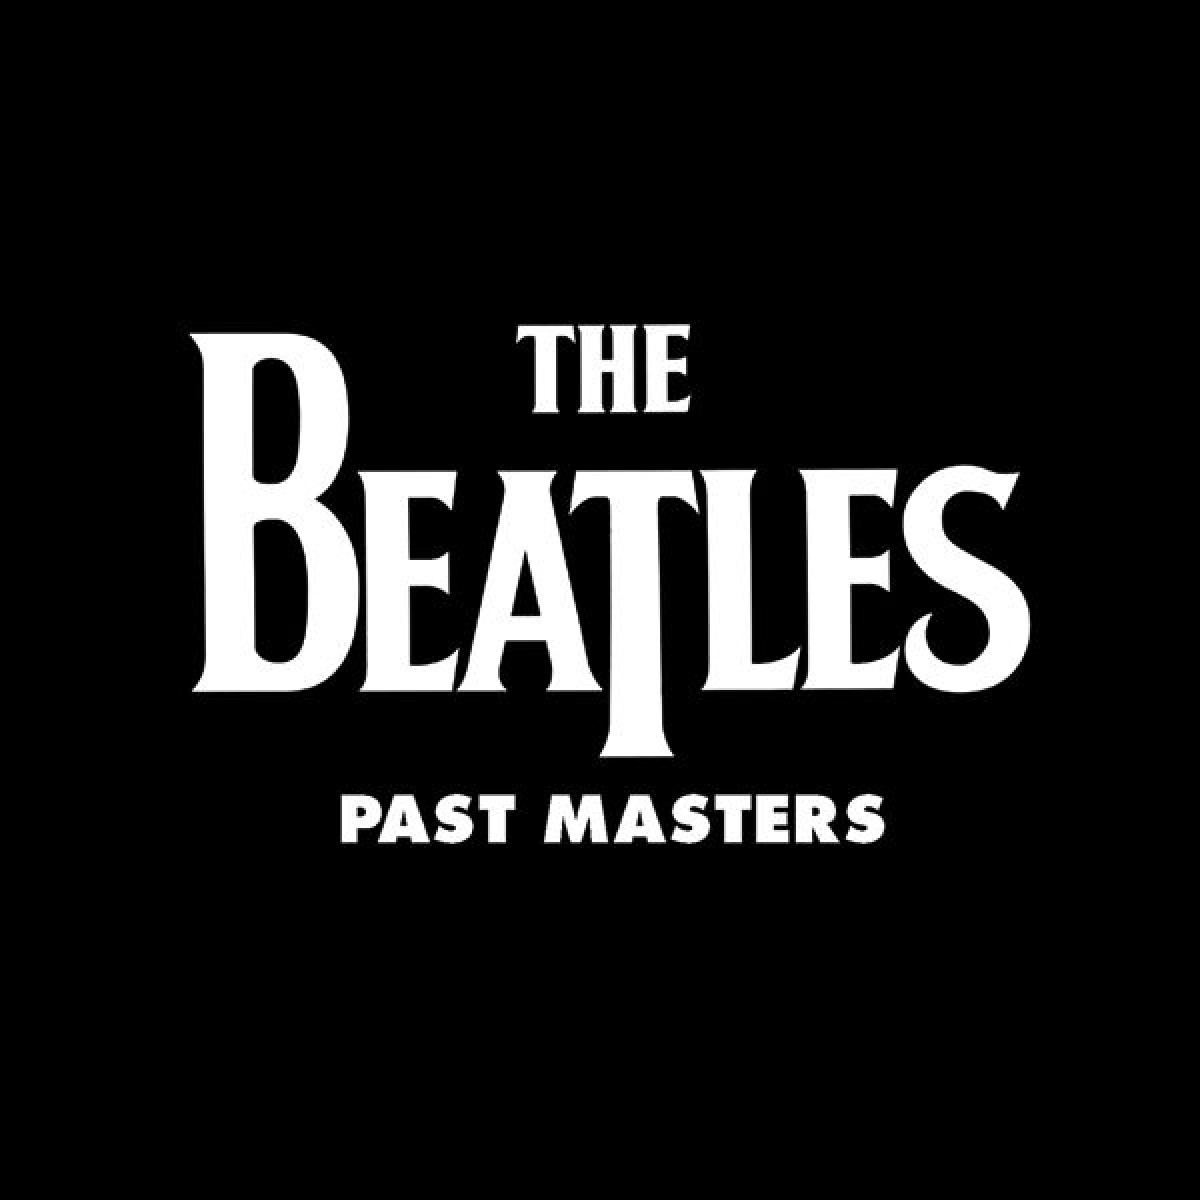 The Beatles - Past Masters (2009 Remaster) CD - 50999 2438072